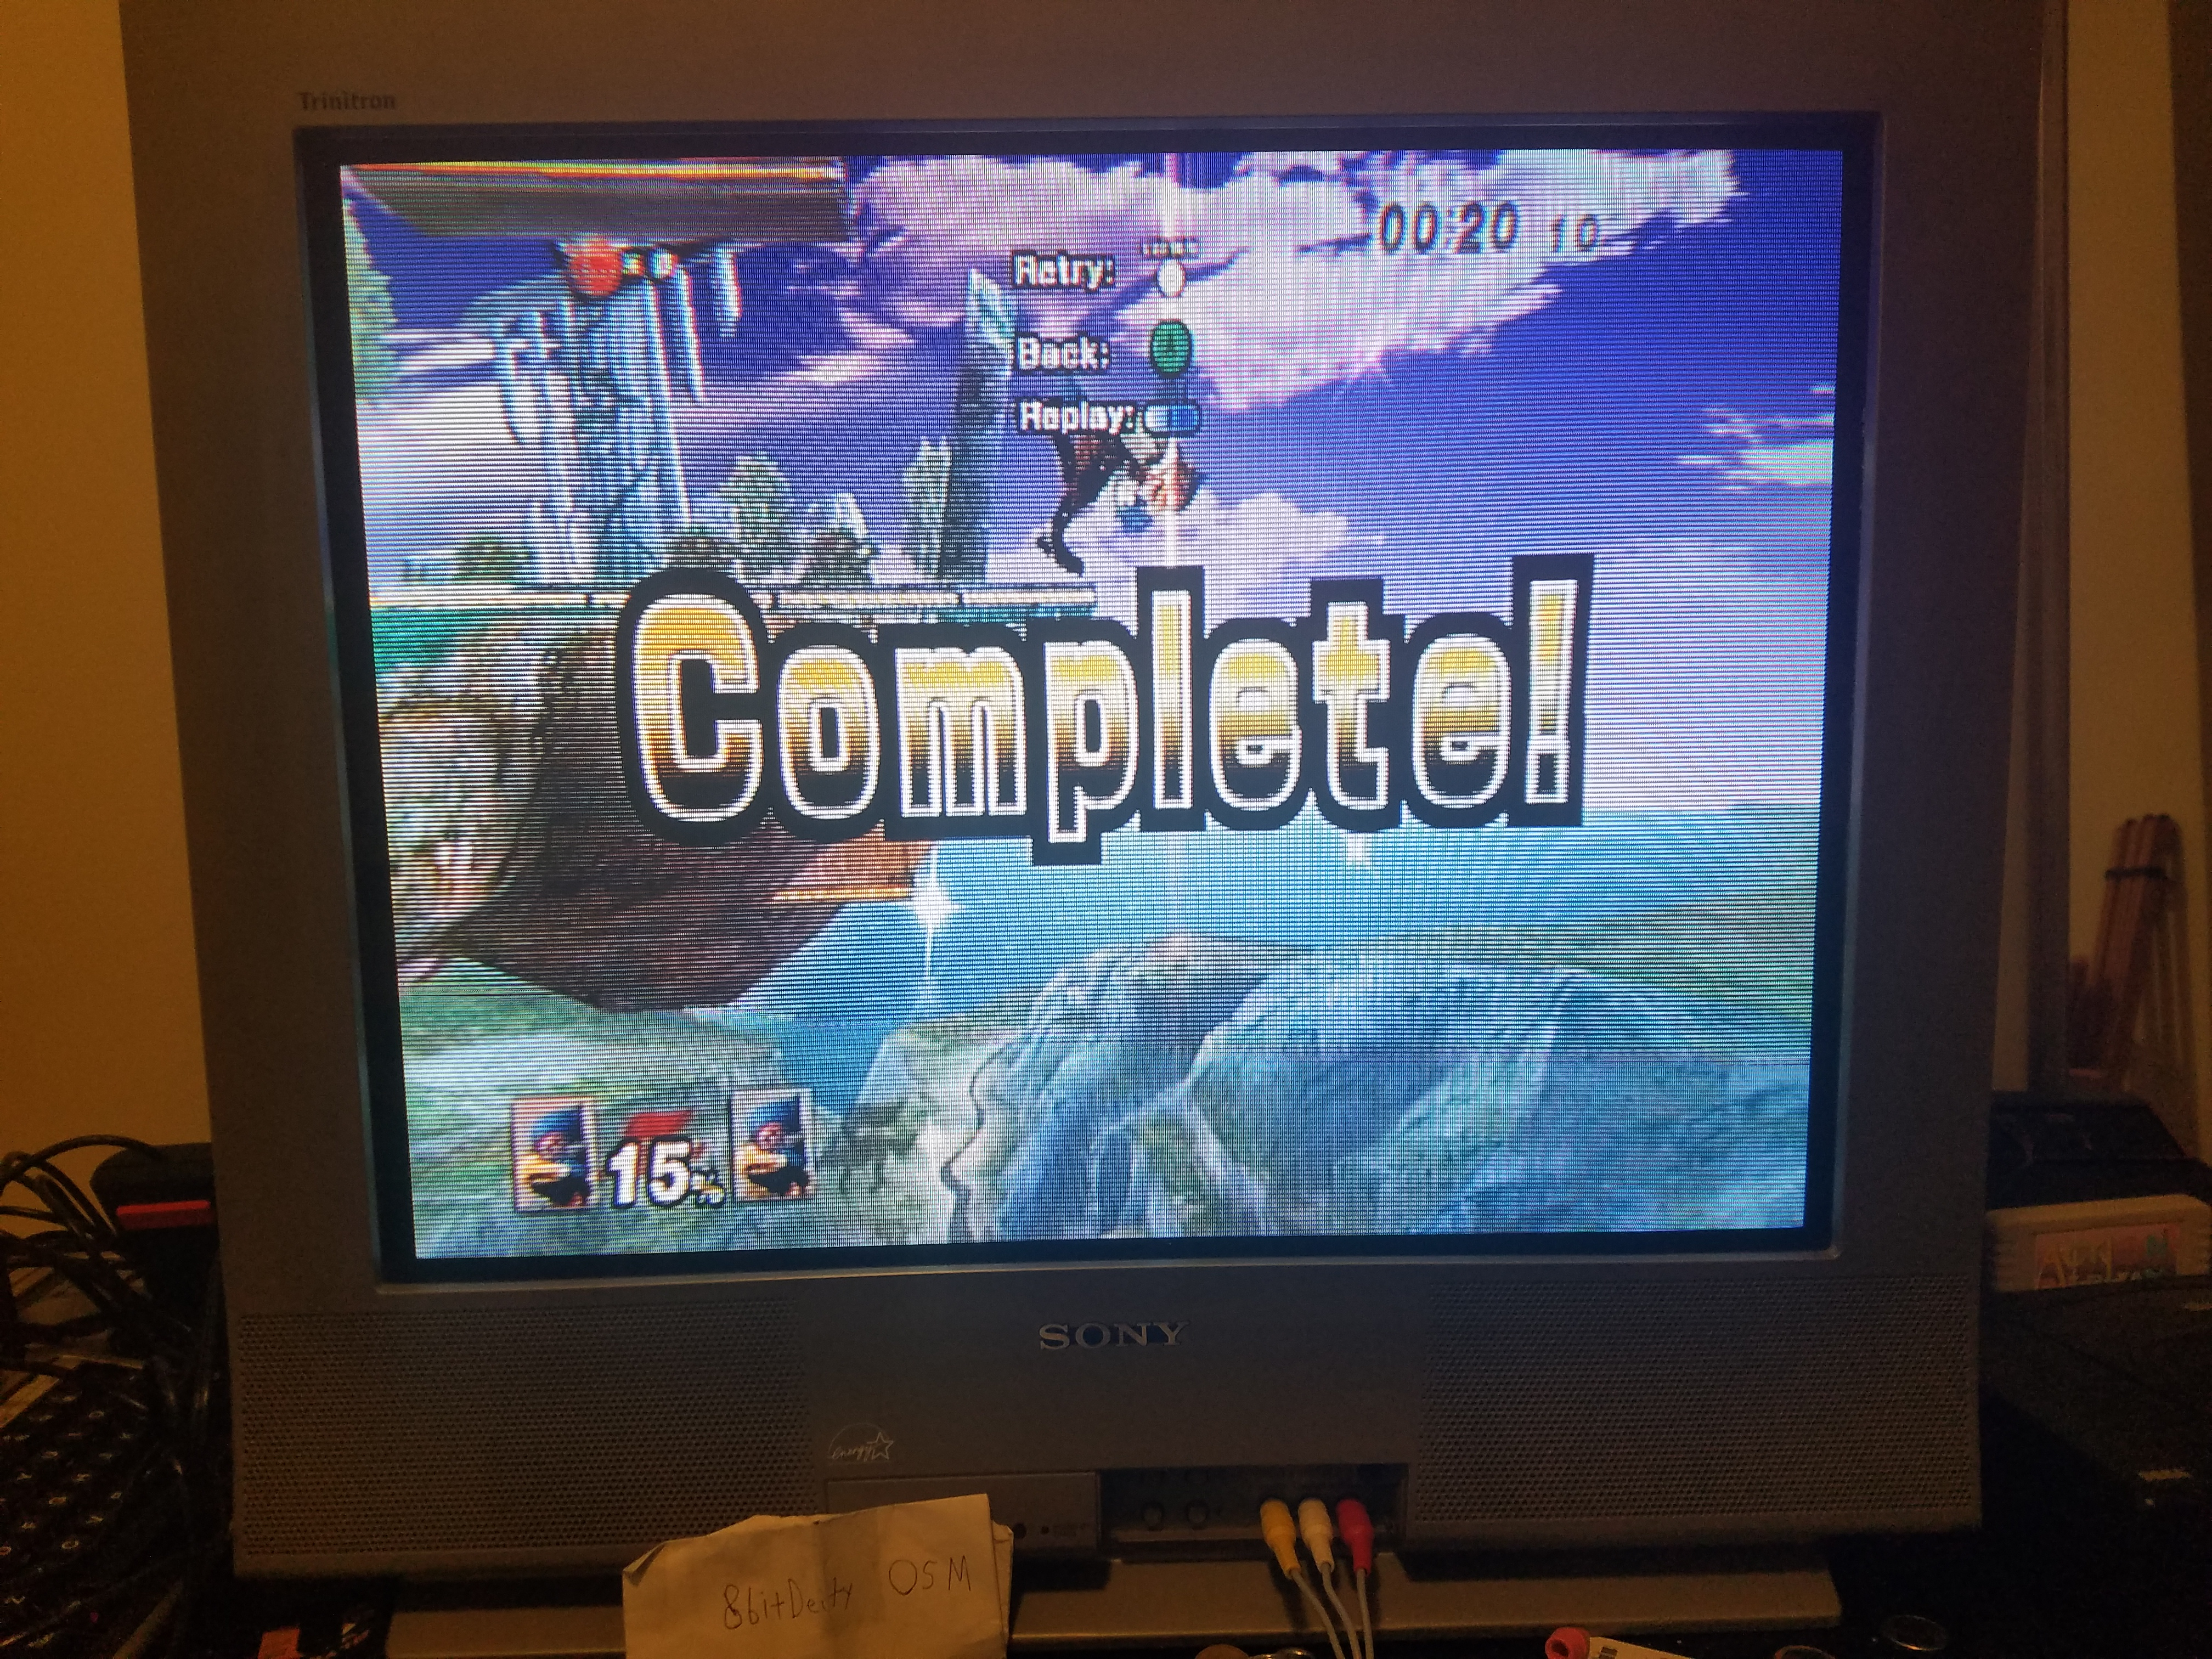 8bitDeity: Super Smash Bros. Brawl: 10-Man Brawl: Falco (Wii) 0:00:20.1 points on 2018-05-17 16:34:38